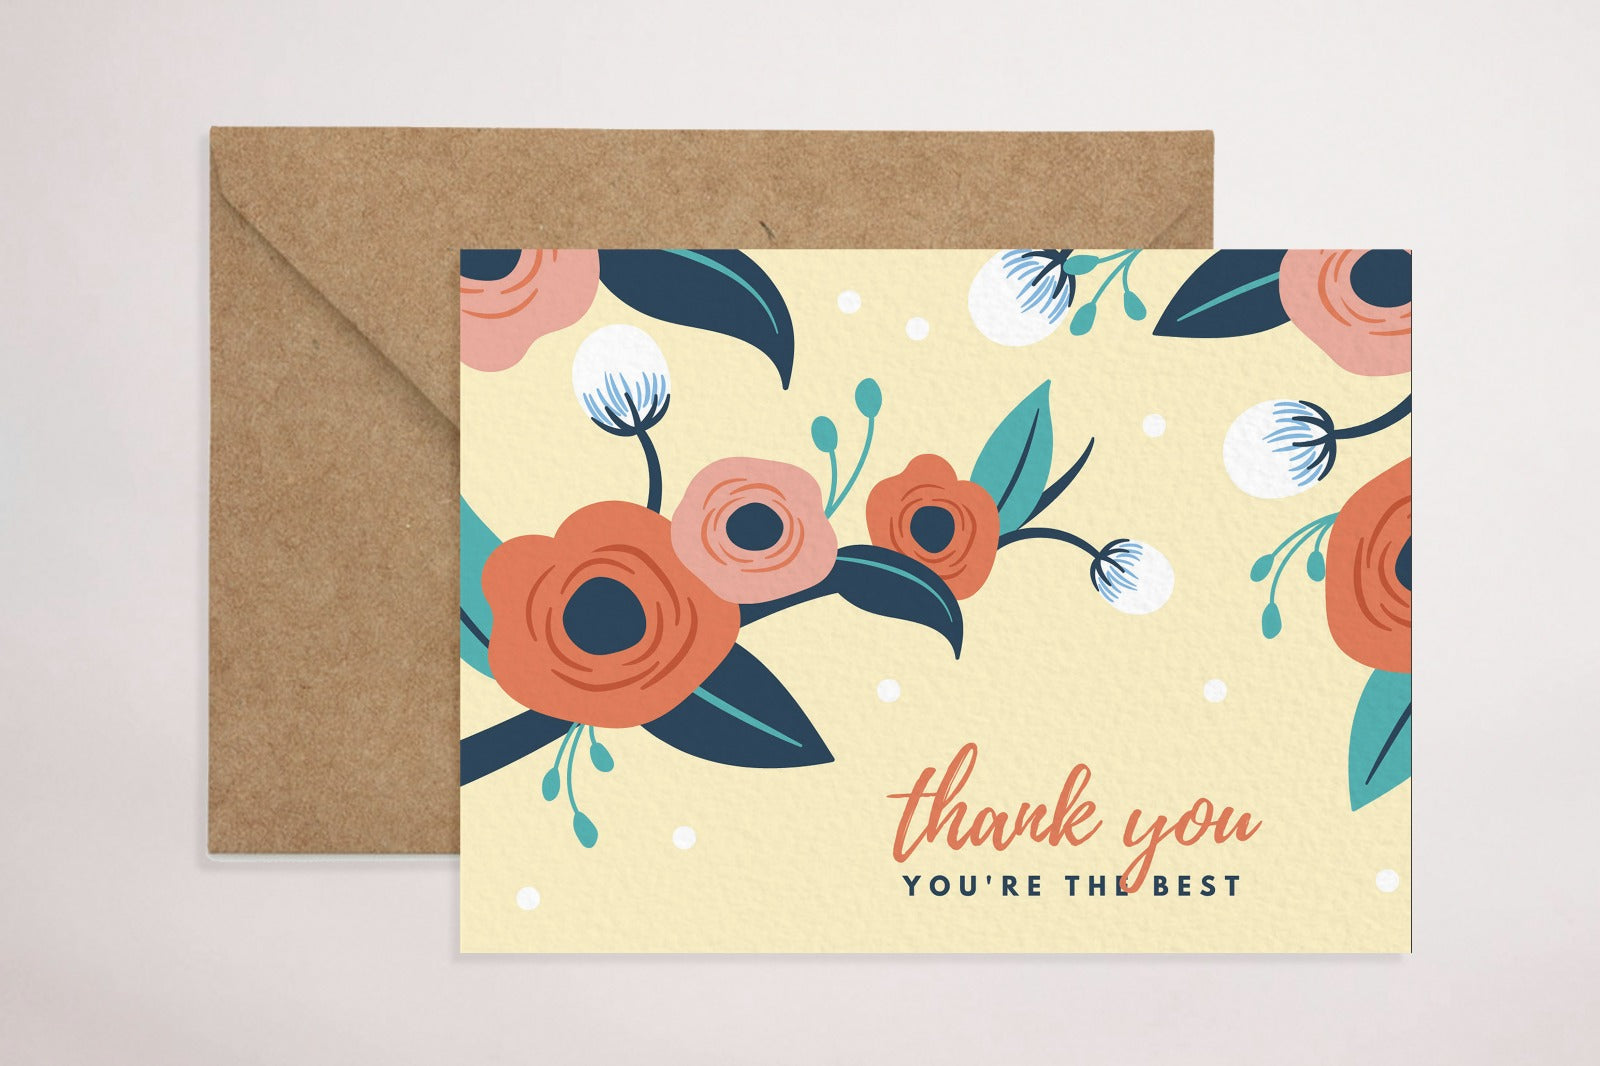 Thank You - You're The Best (Greeting Card)